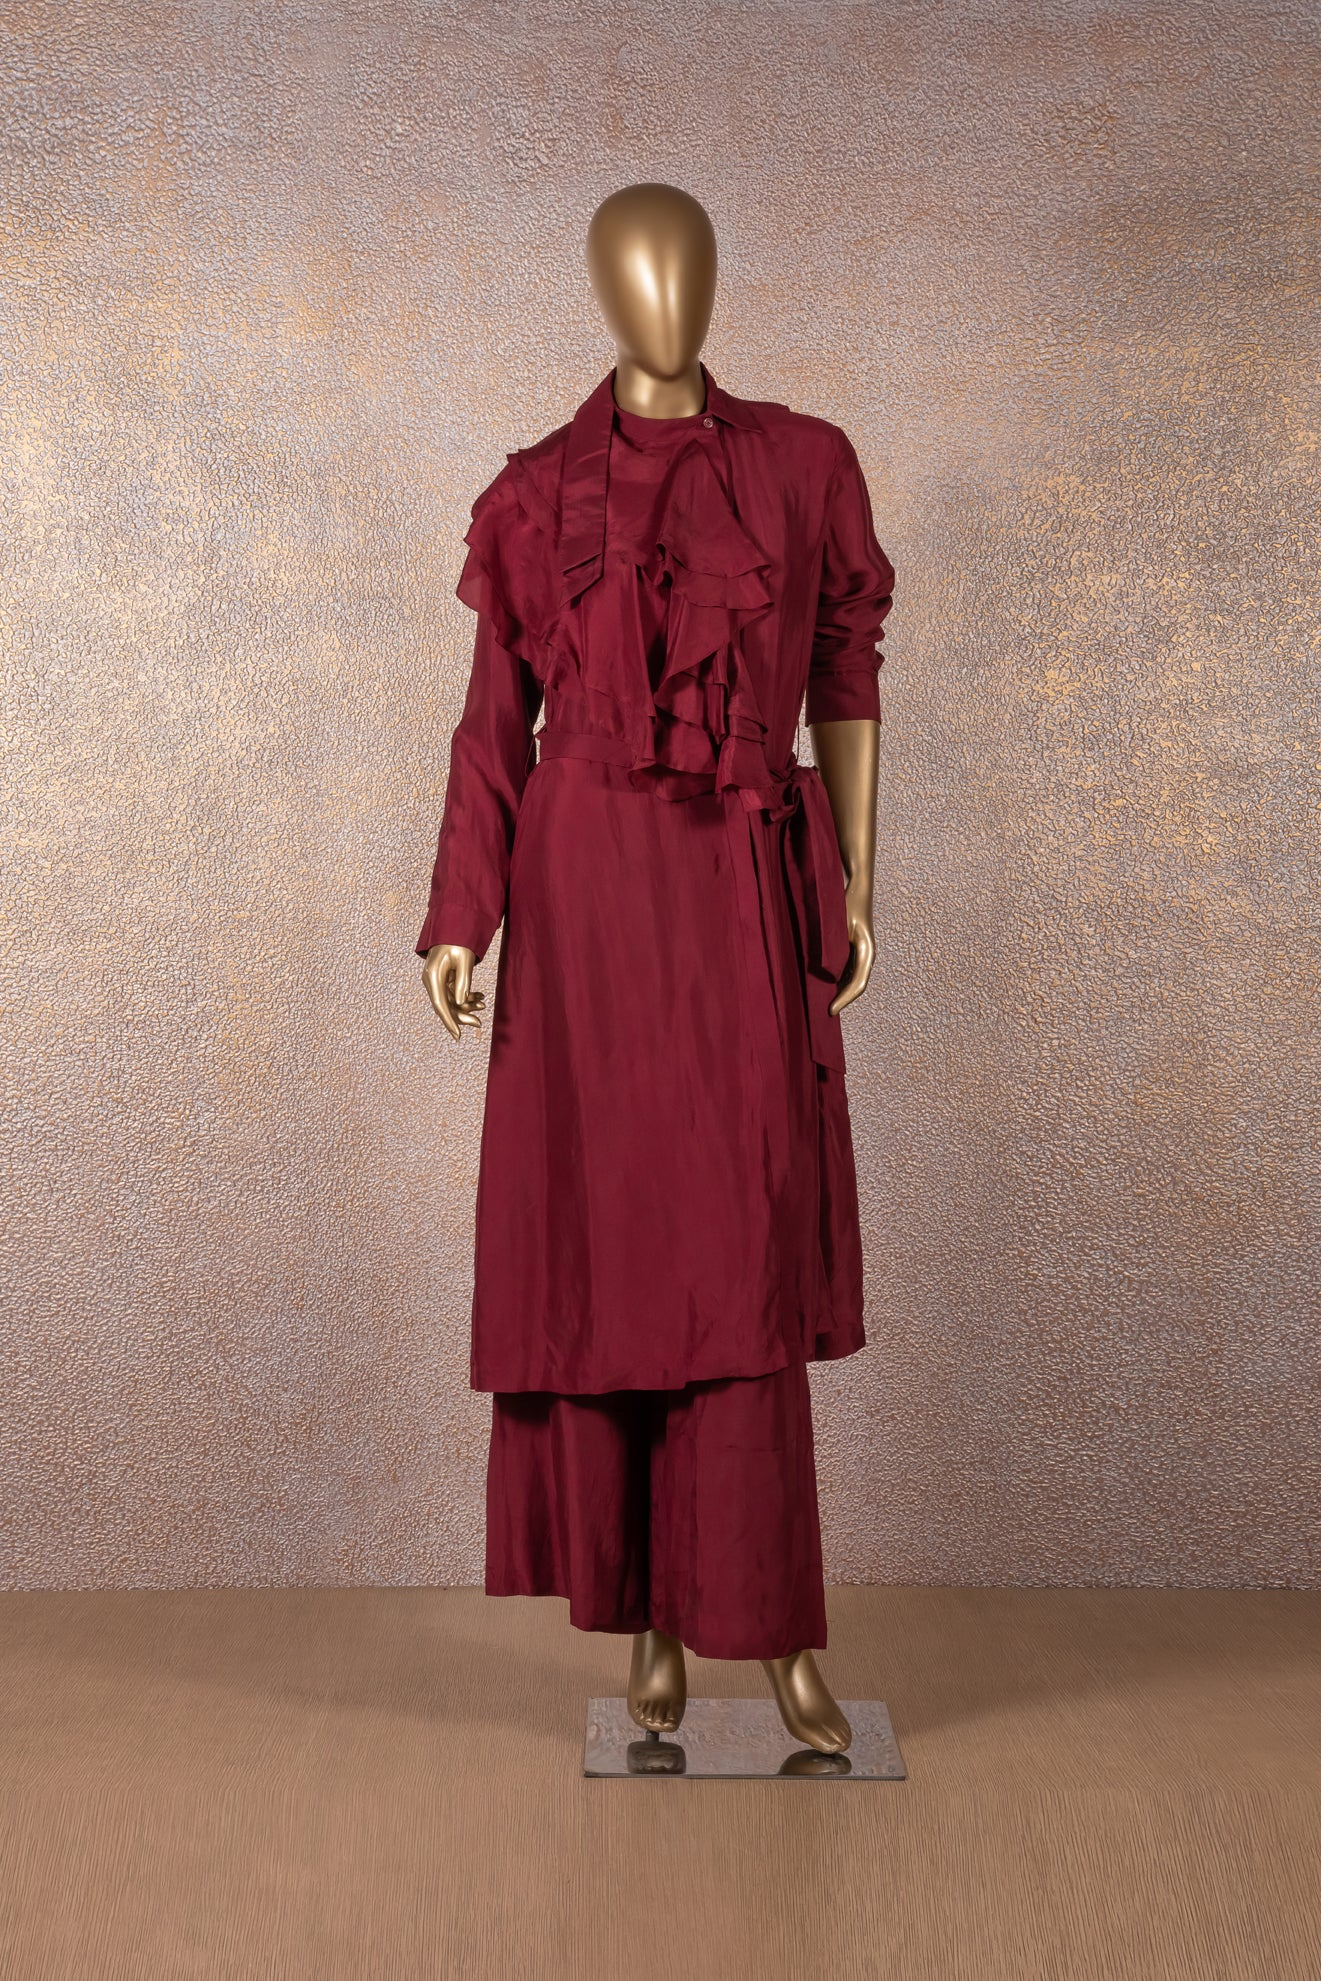 RIDHI MEHRA - Wine Tunic with Ruffle Neckline and Pants